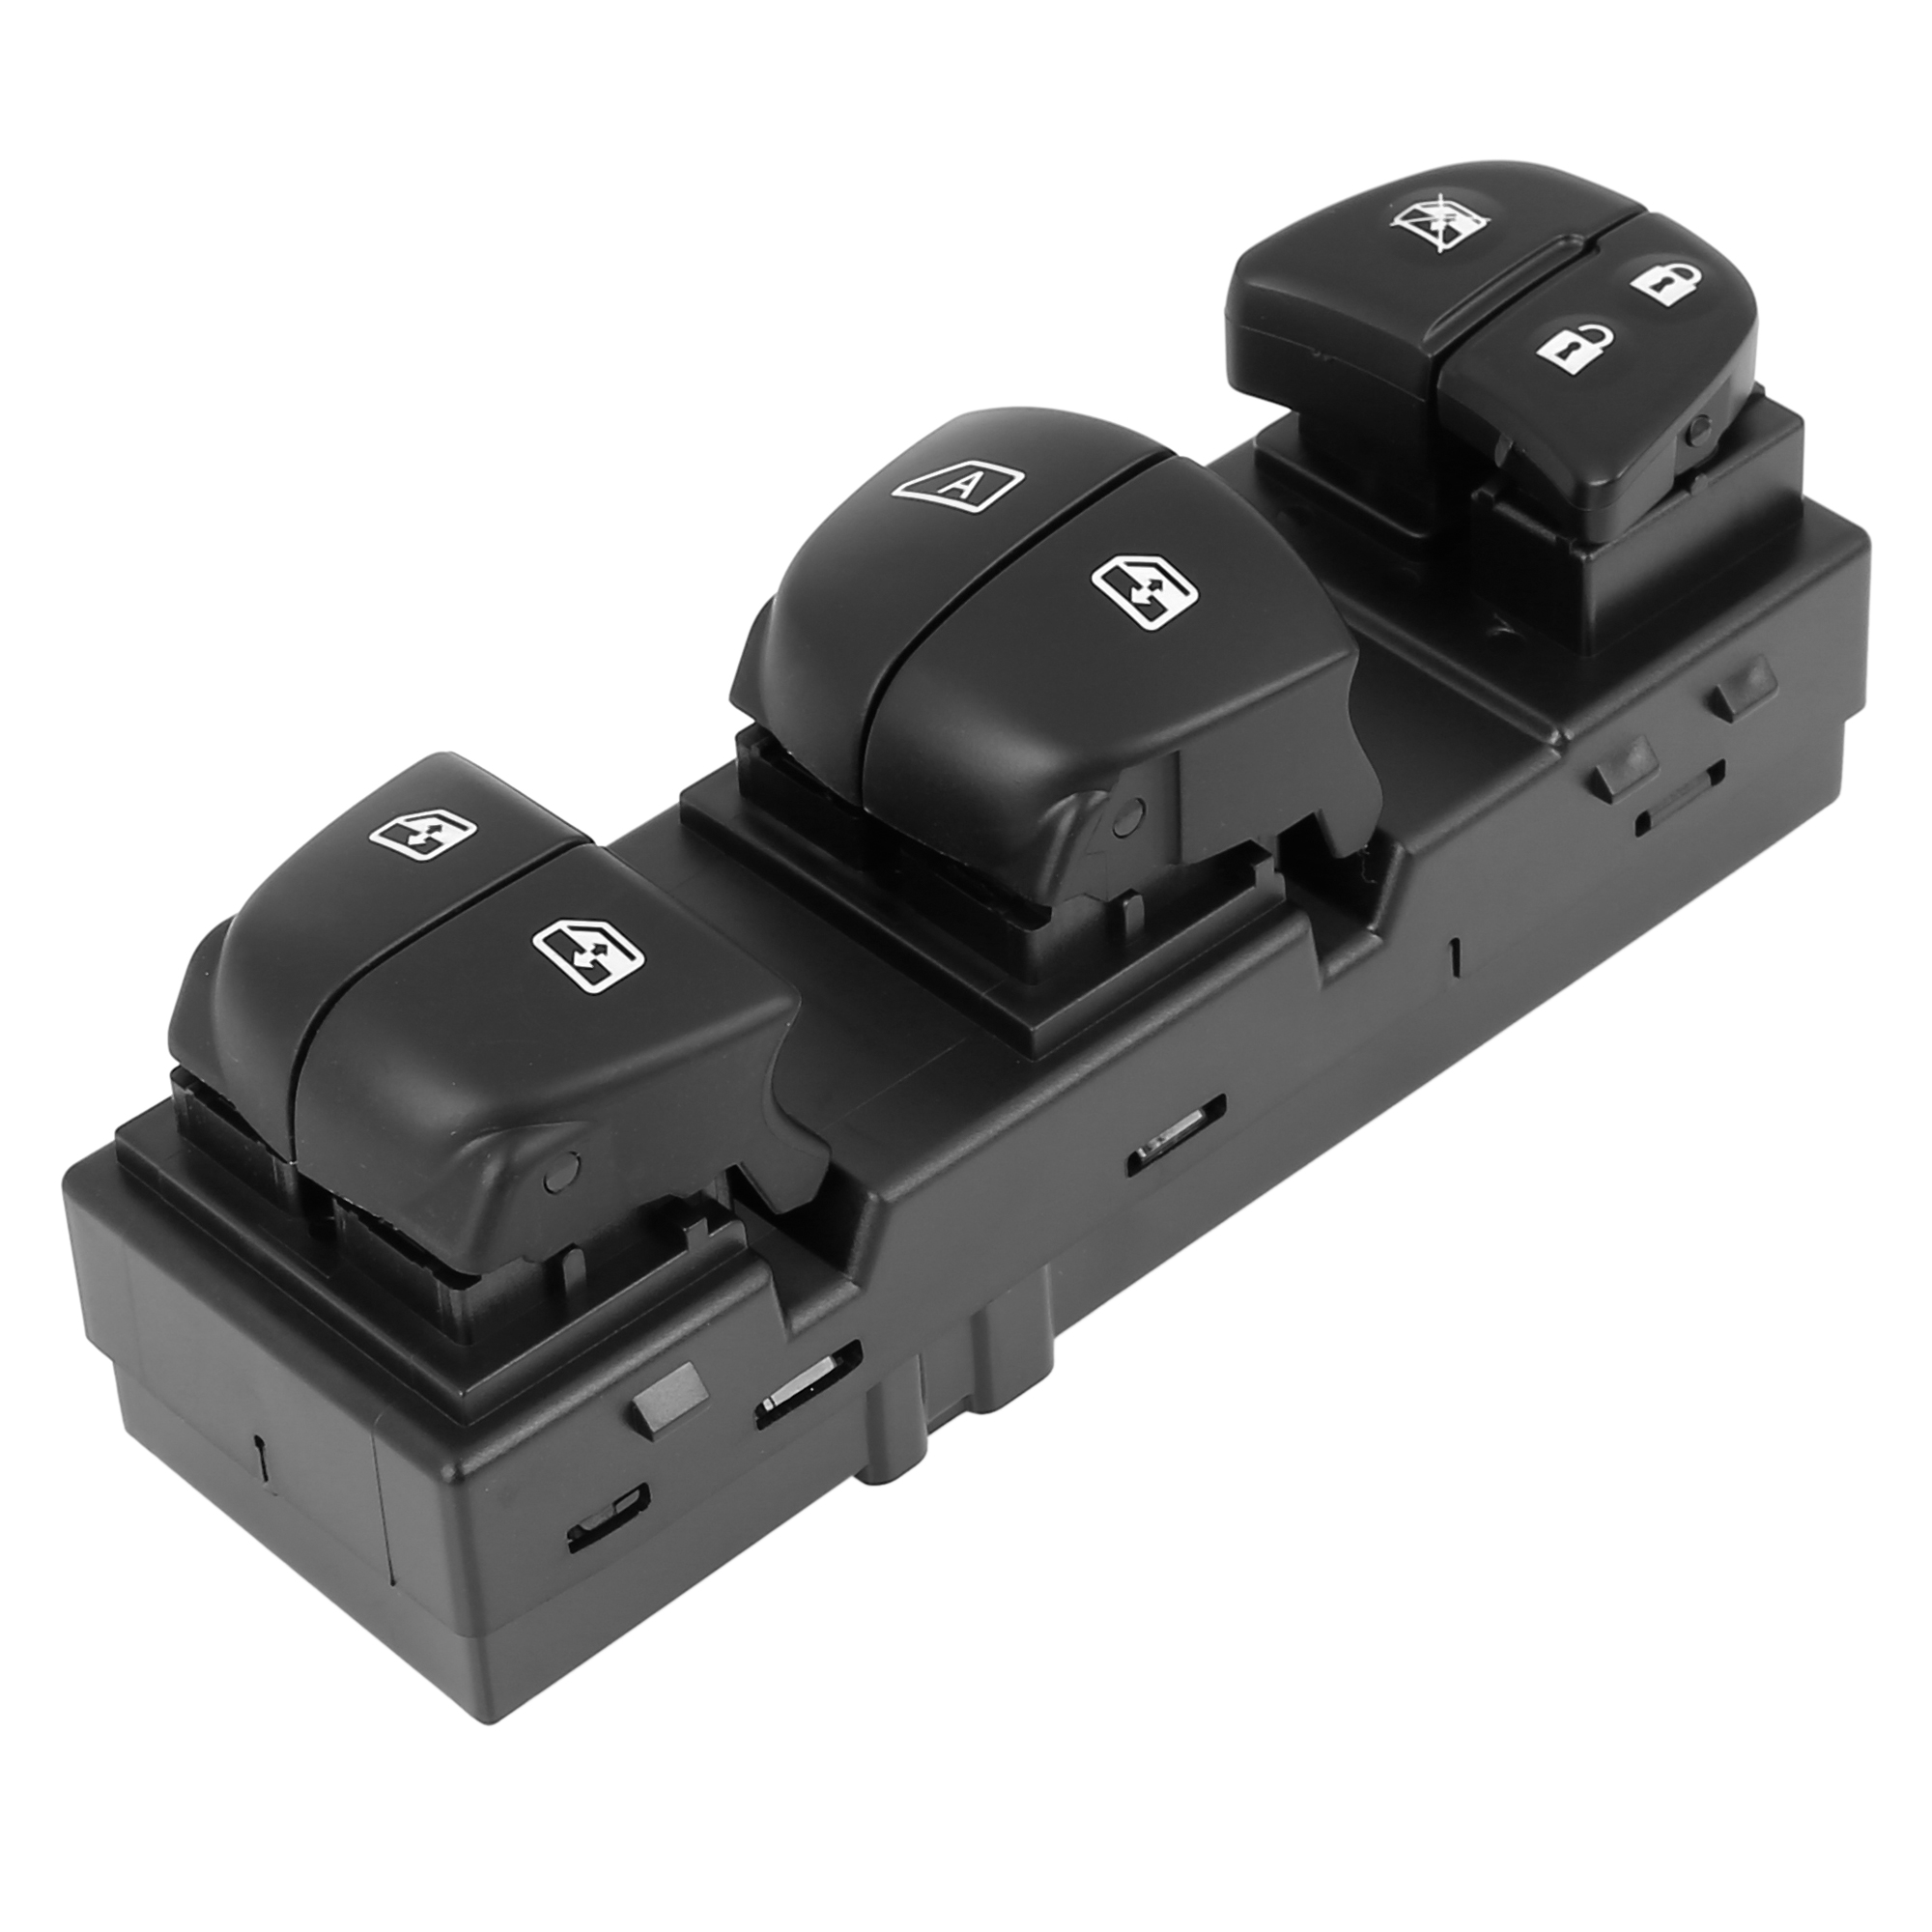 25401-1KA0A Power Window Switch Front Driver Left Side for Nissan Qashqai Altima